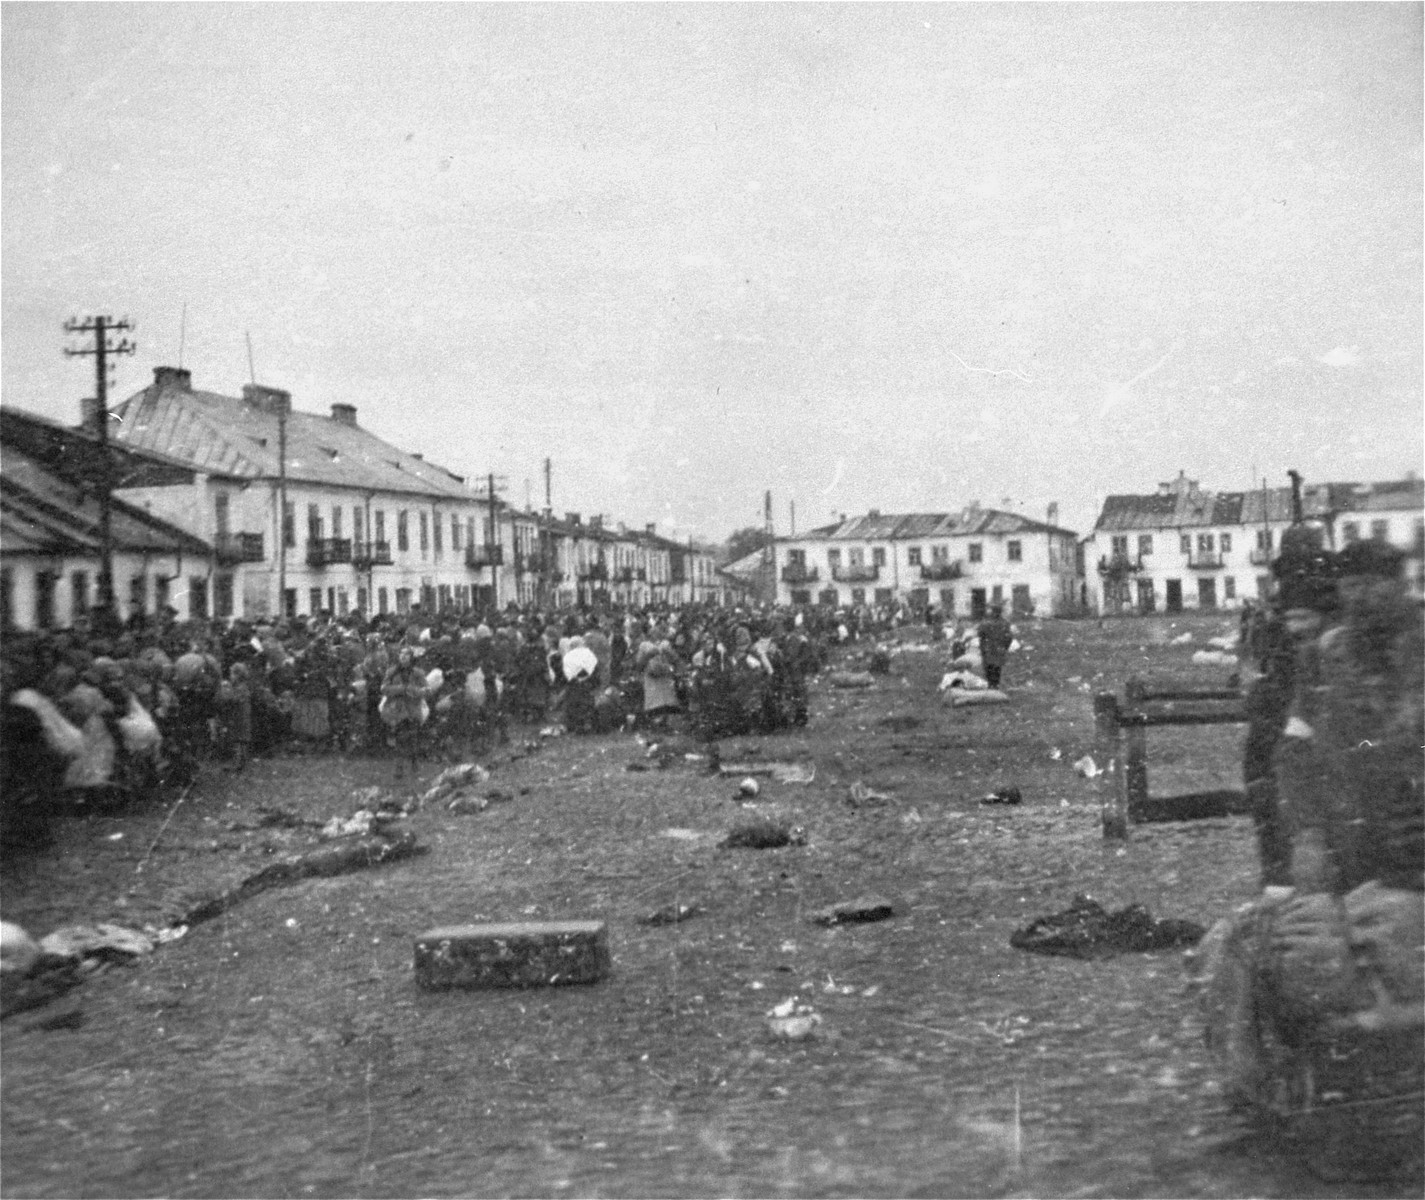 Jews are rounded up for deportation in the Wisznice ghetto.